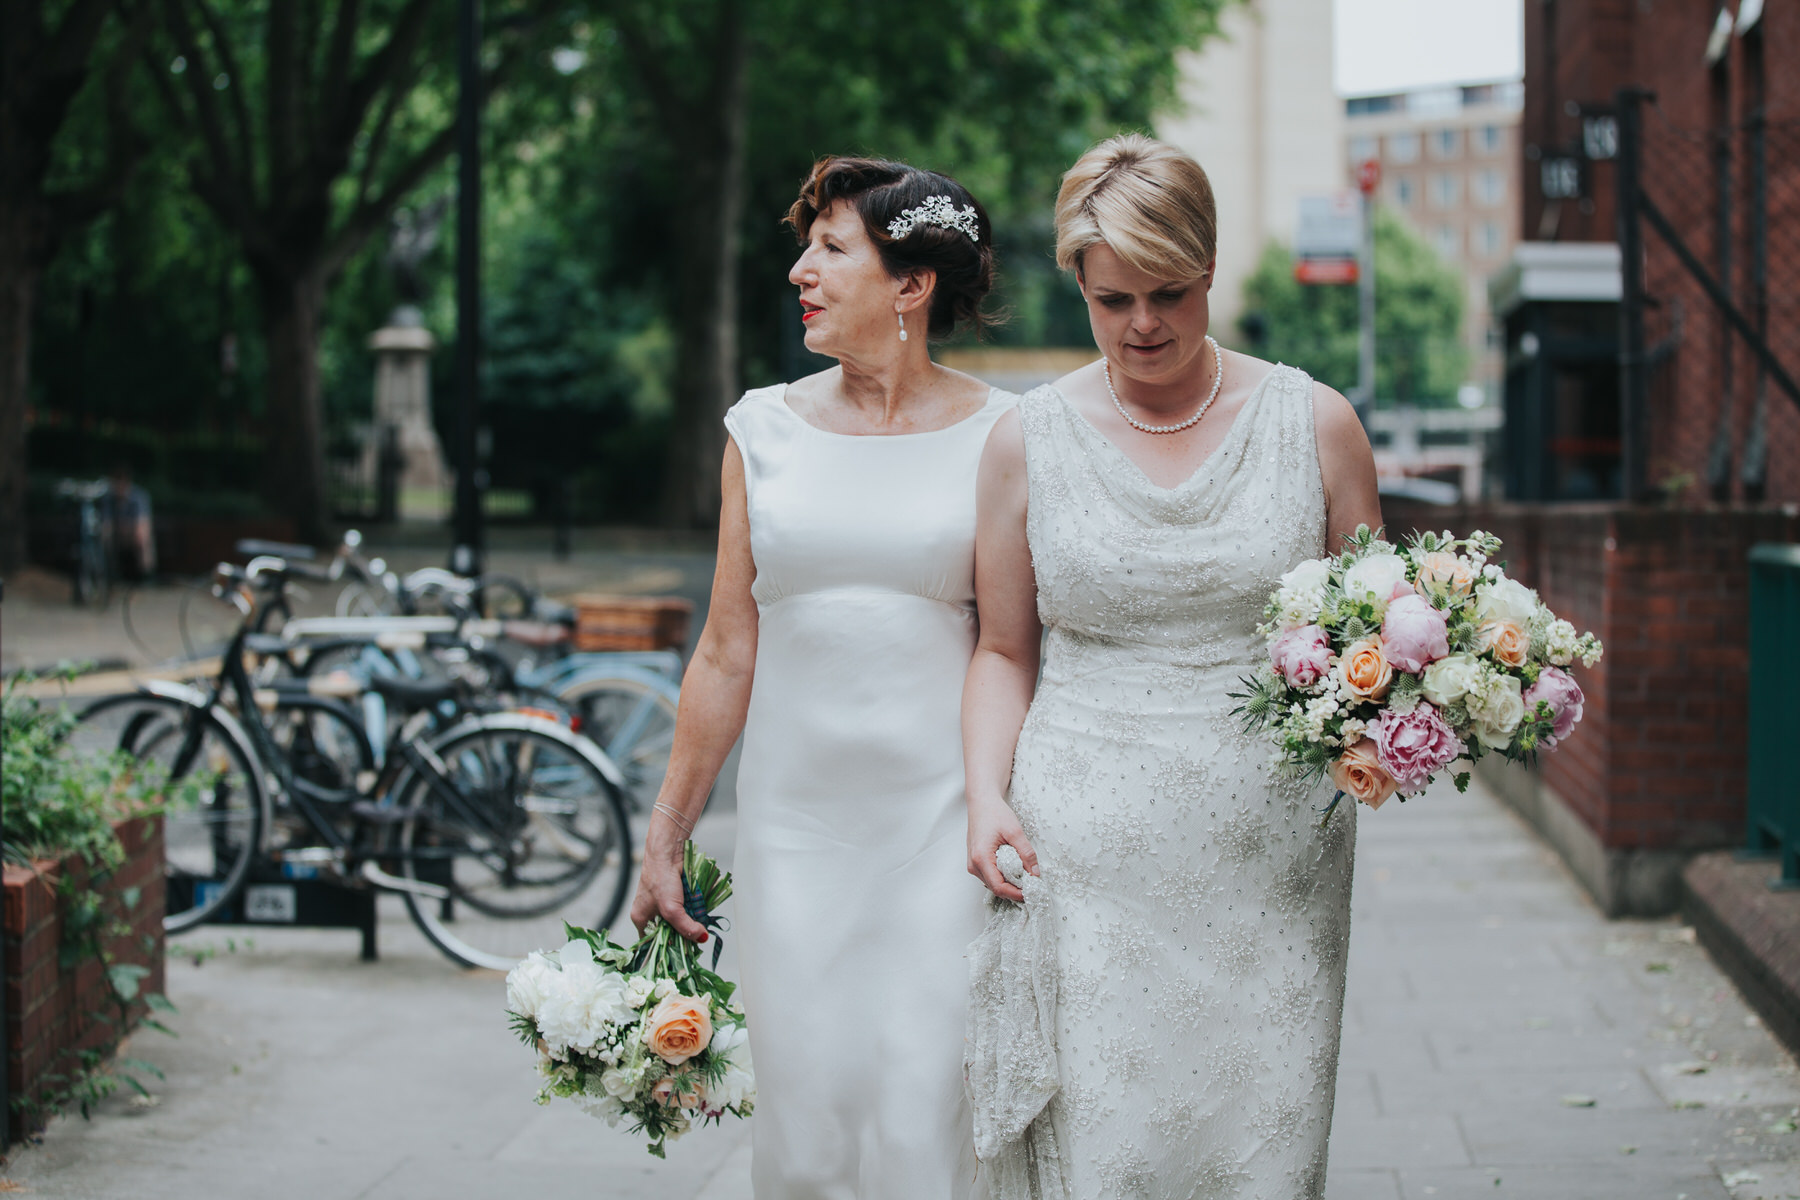 206 two brides newly married couple Islington reportage photographer.jpg